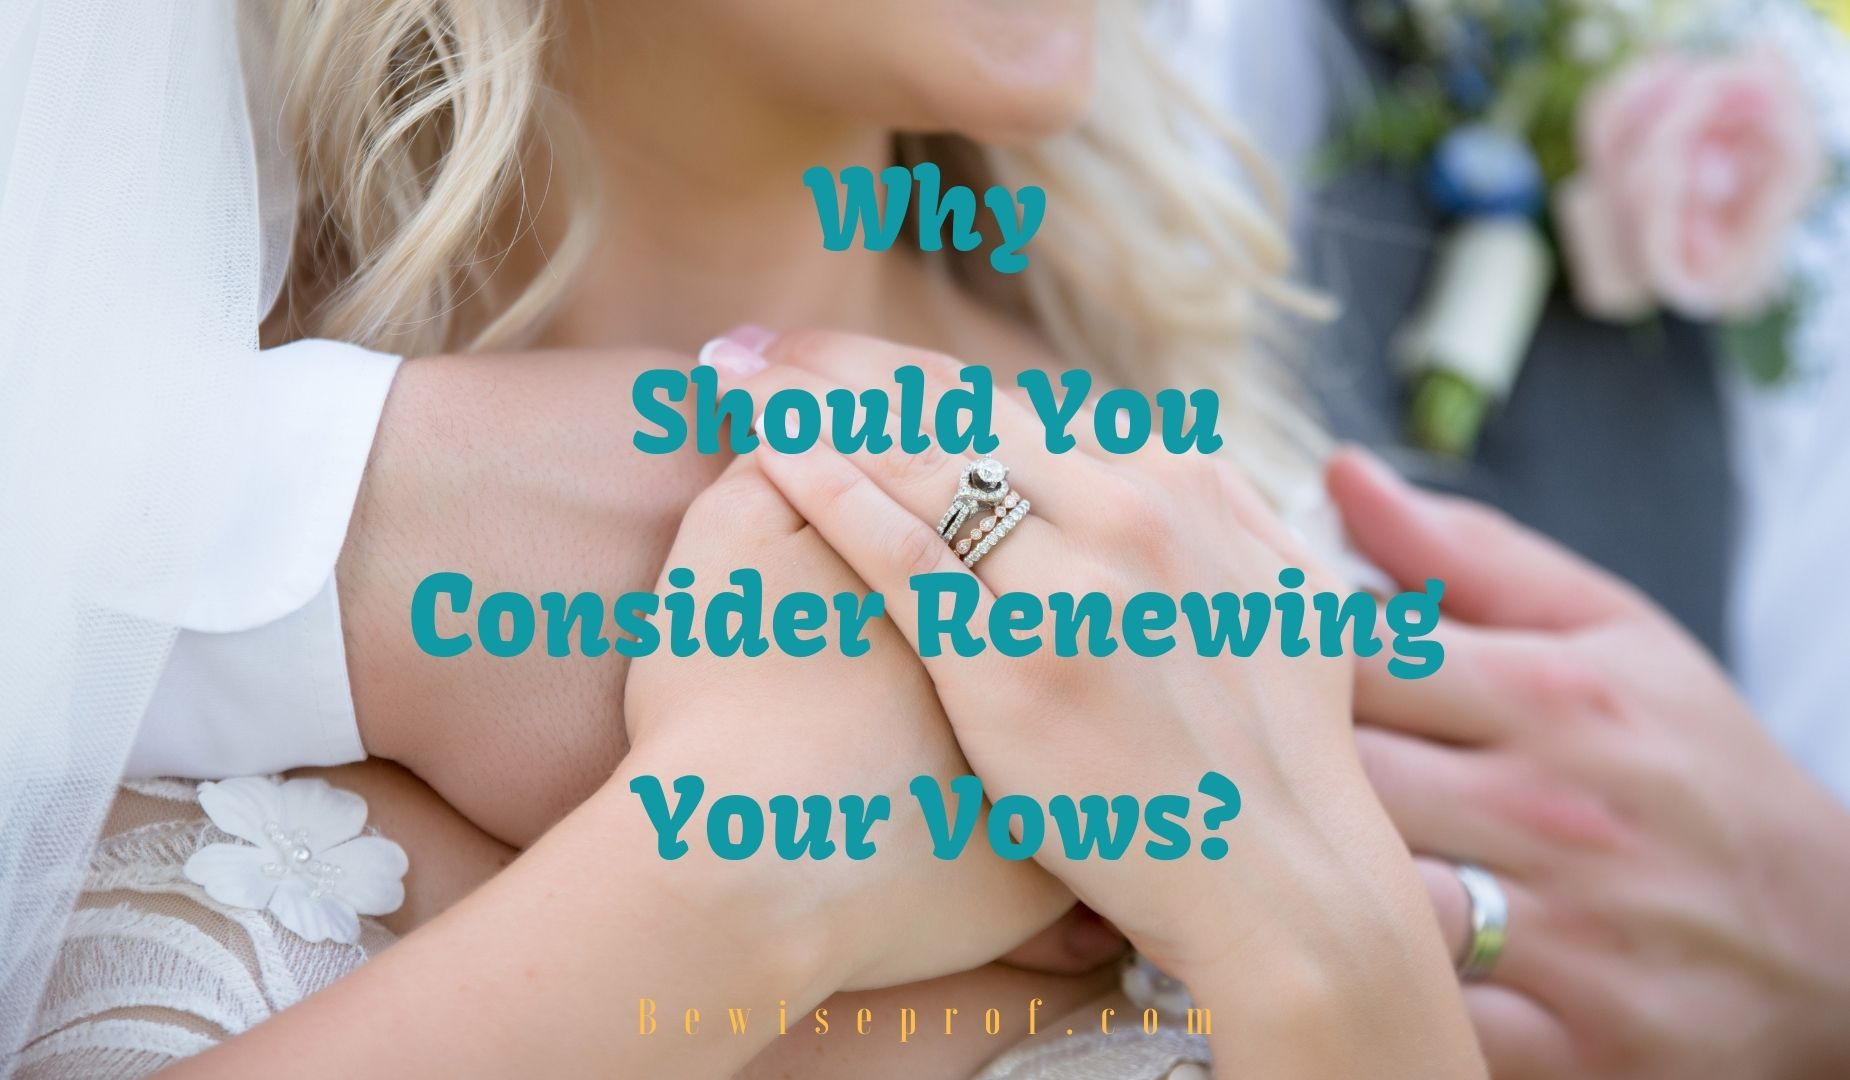 Why Should You Consider Renewing Your Vows?